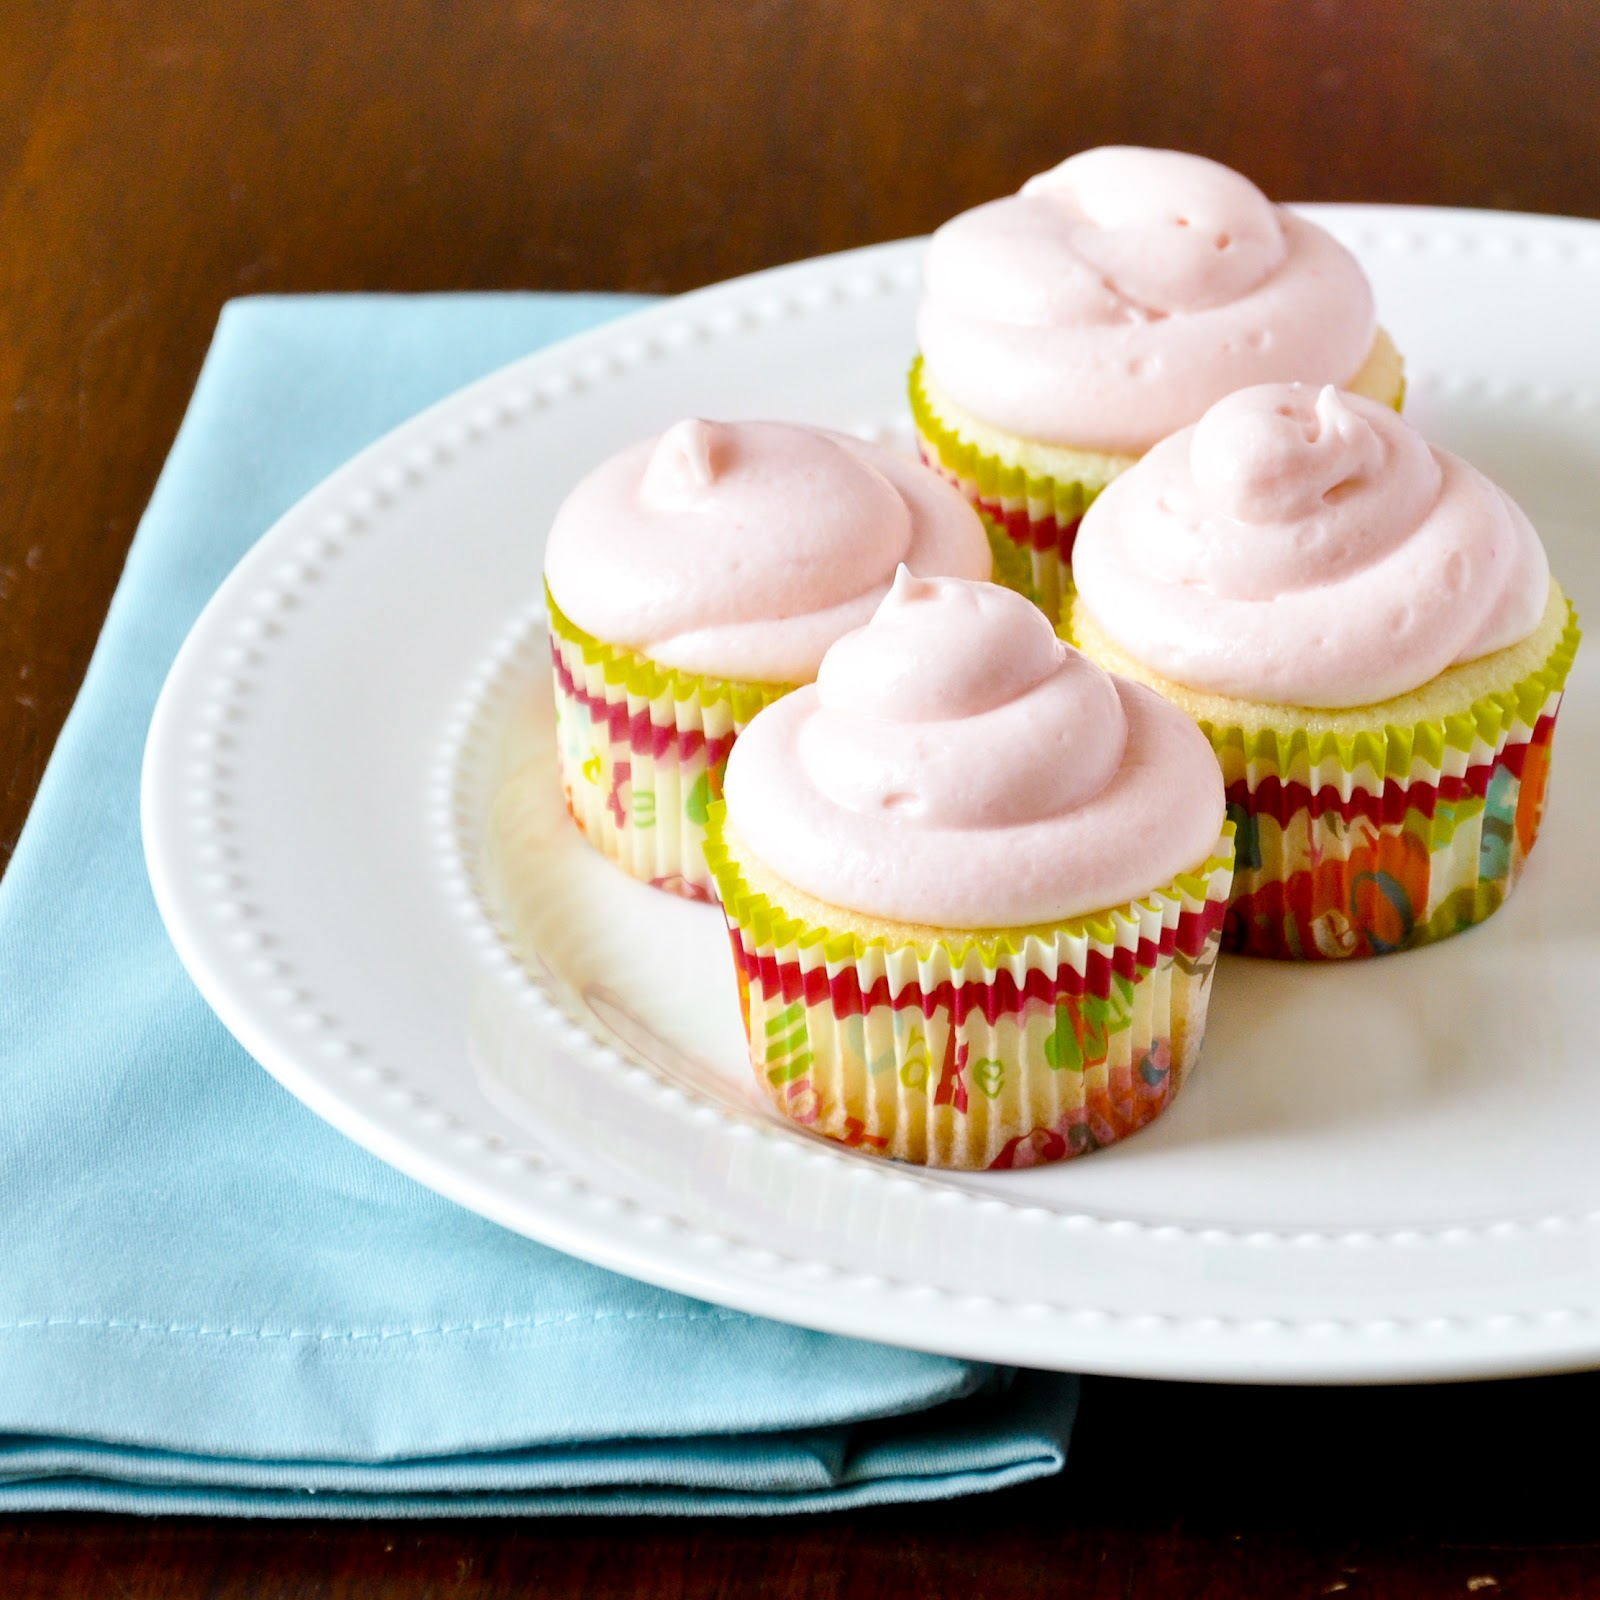 ... and Good Food: Lemon Cupcakes with Strawberry Cream Cheese Frosting